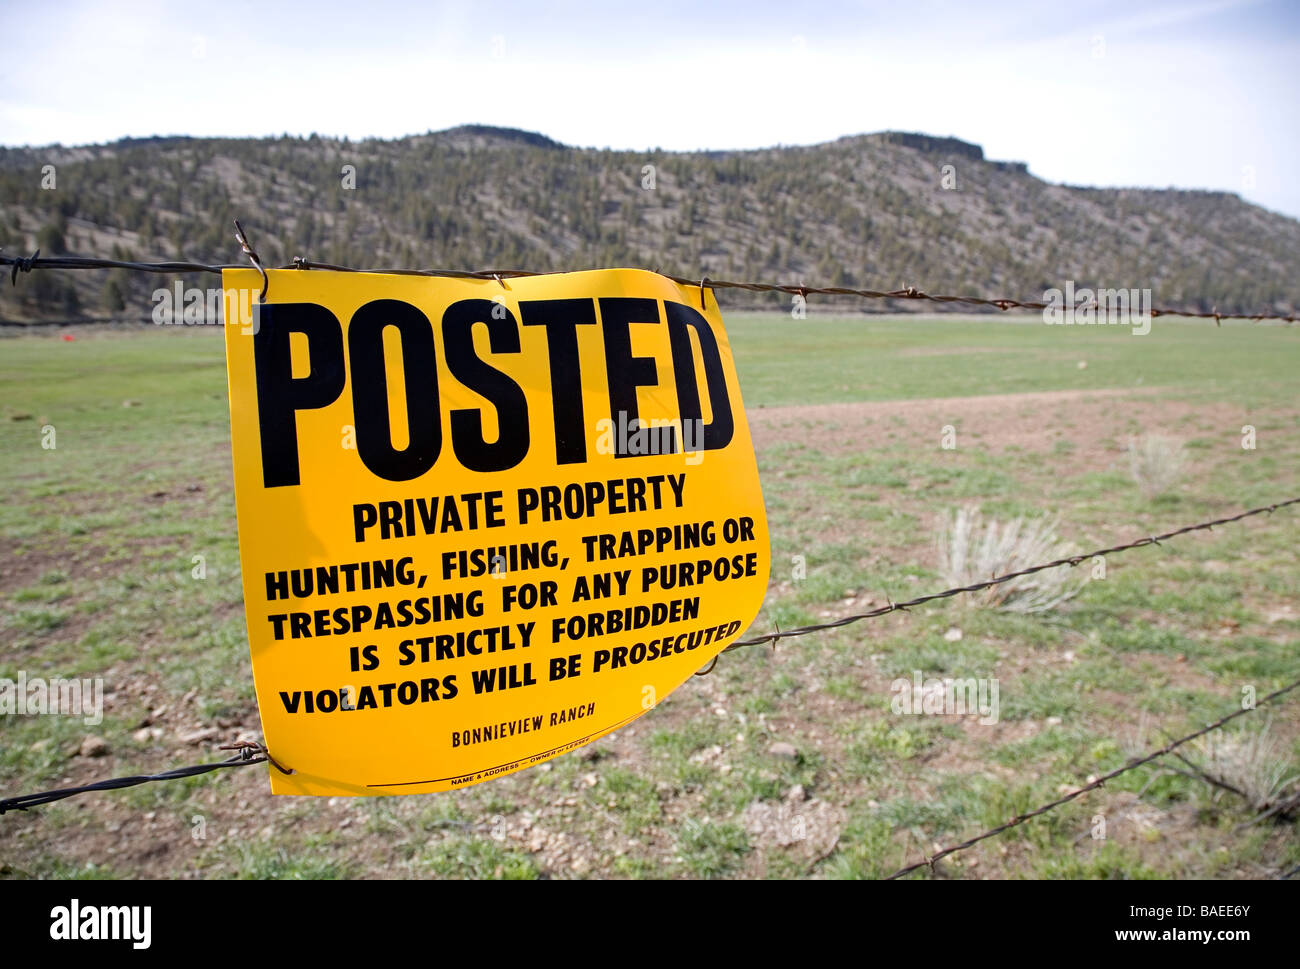 USA OREGON CROOKED RIVER VALLEY A Posted sign on a barbed wire fence tells people they can t trespass on private - Stock Image